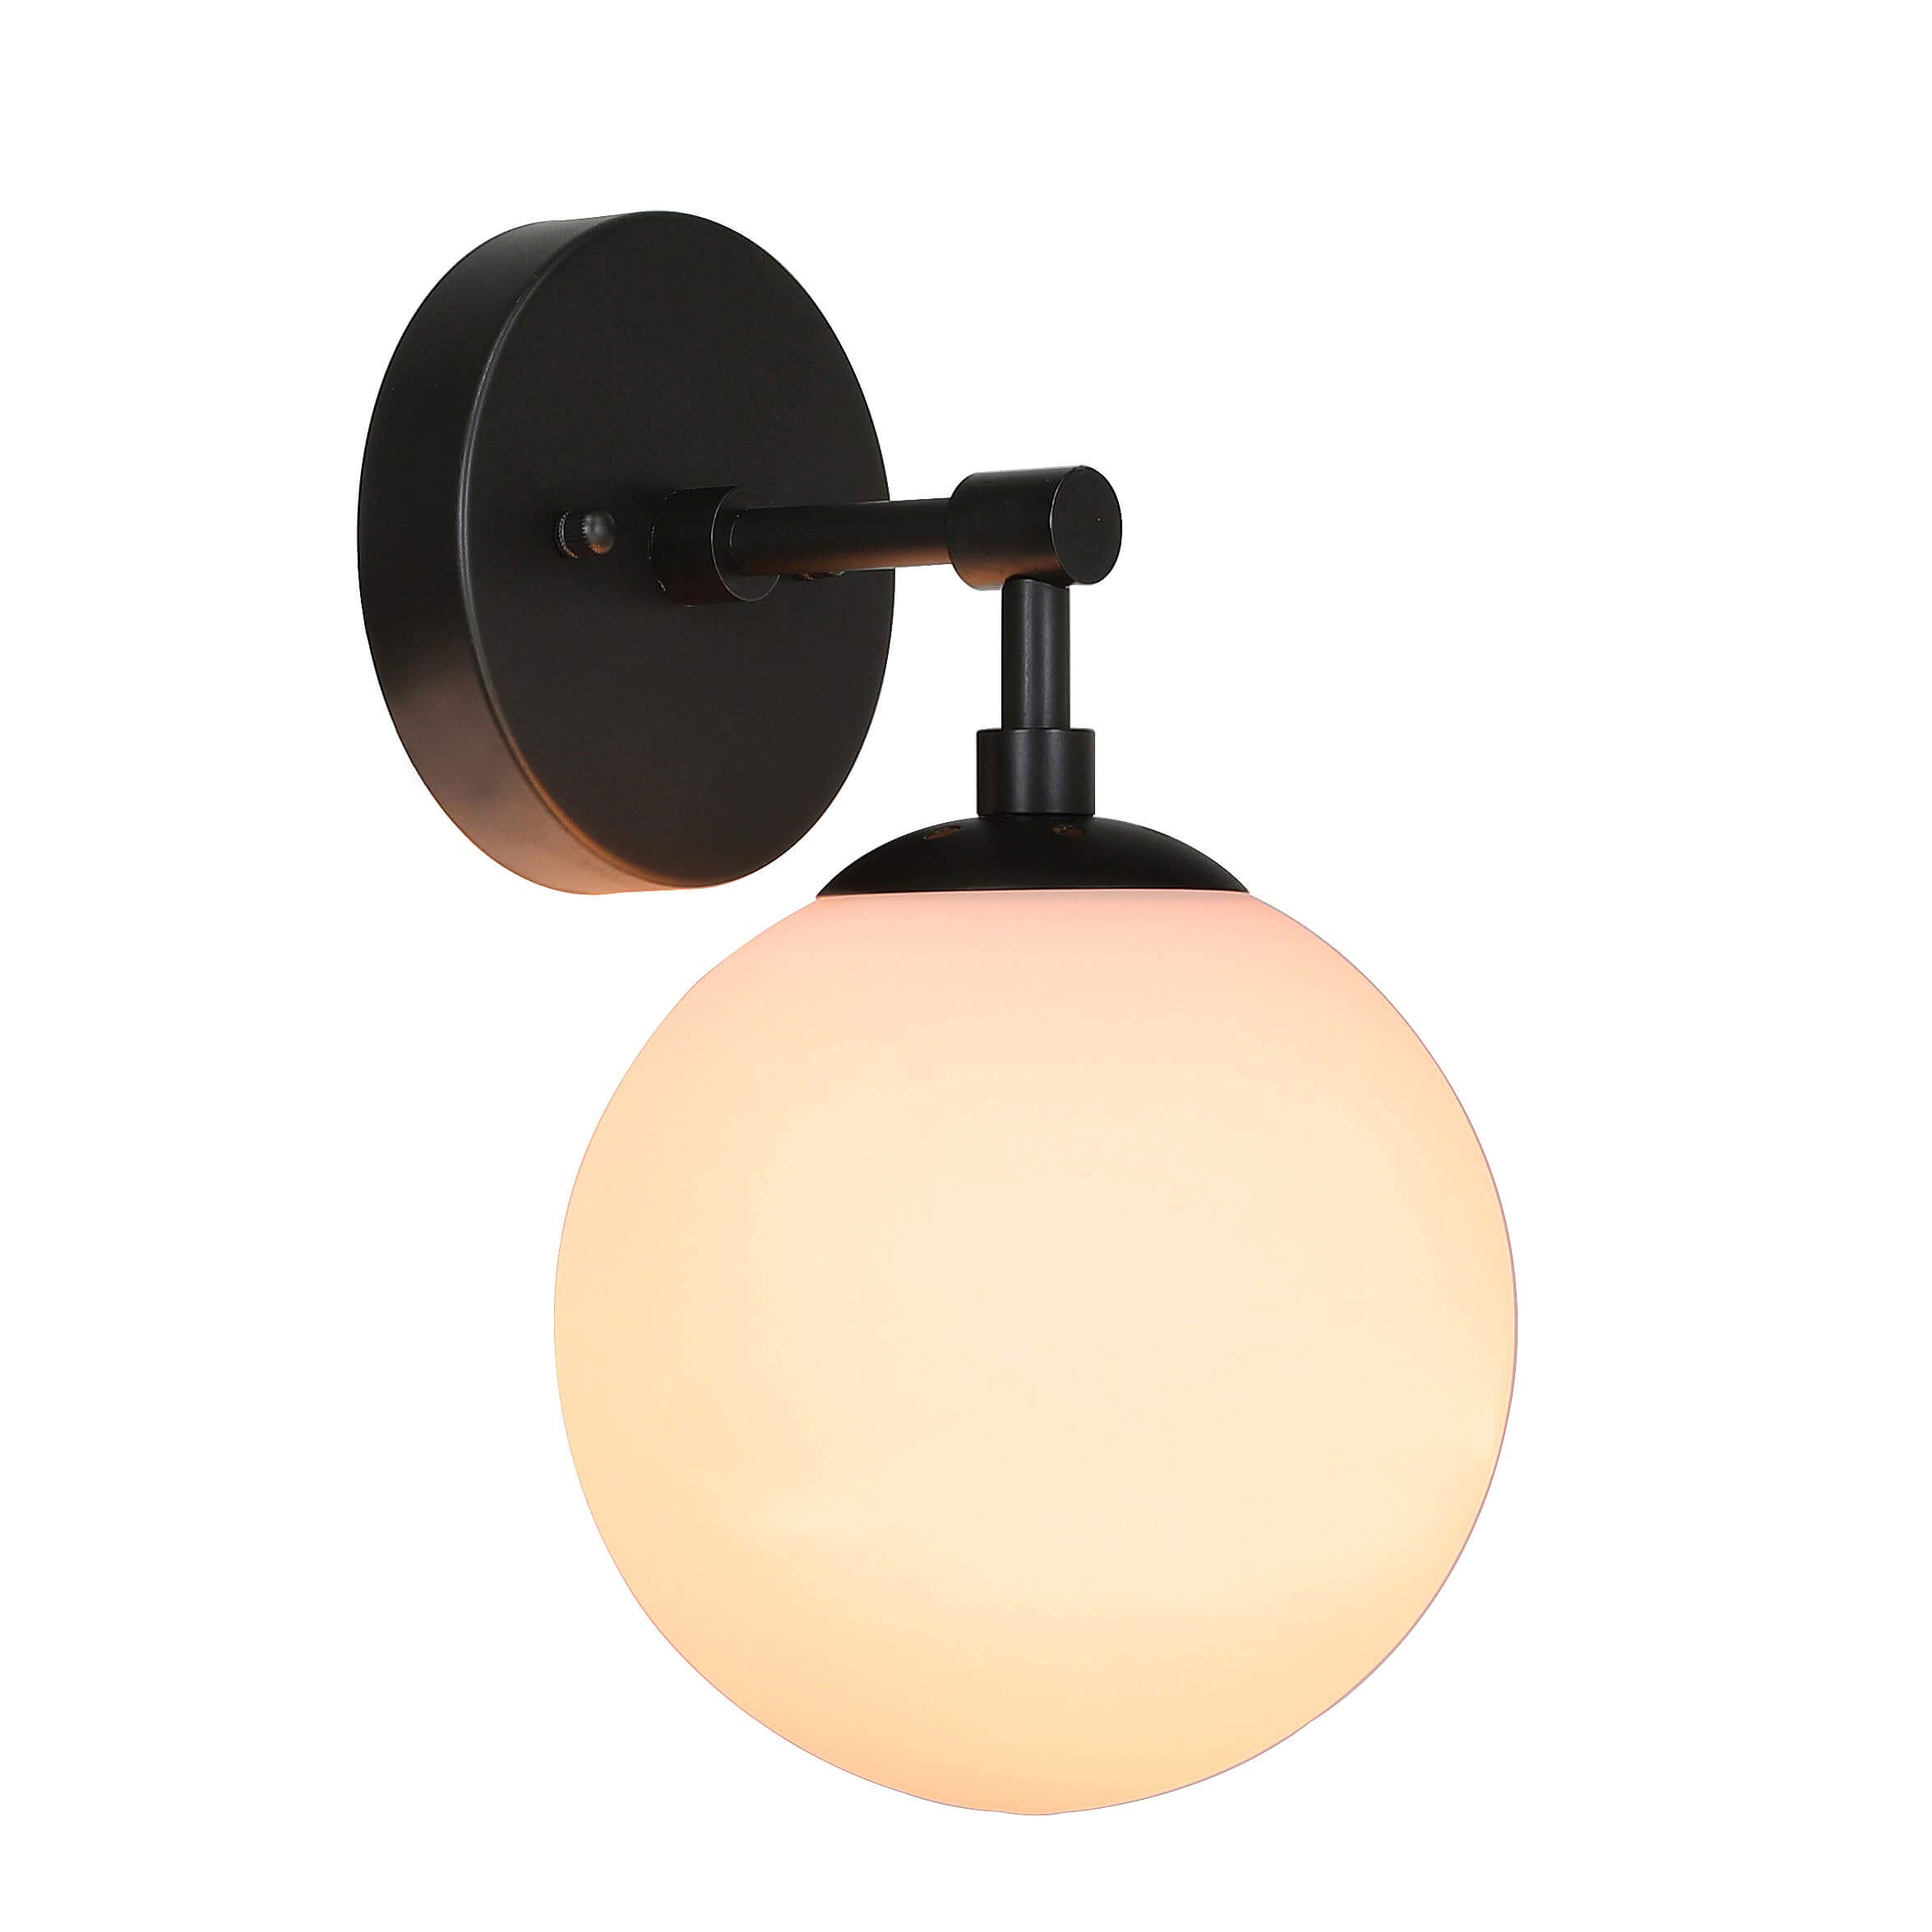 XiNBEi Lighting Wall Light 1 Light Vintage Wall Sconce with Globe Glass, Bathroom Vanity Light in Matte Black for Bathroom & Bedroom XB-W1211-MBK